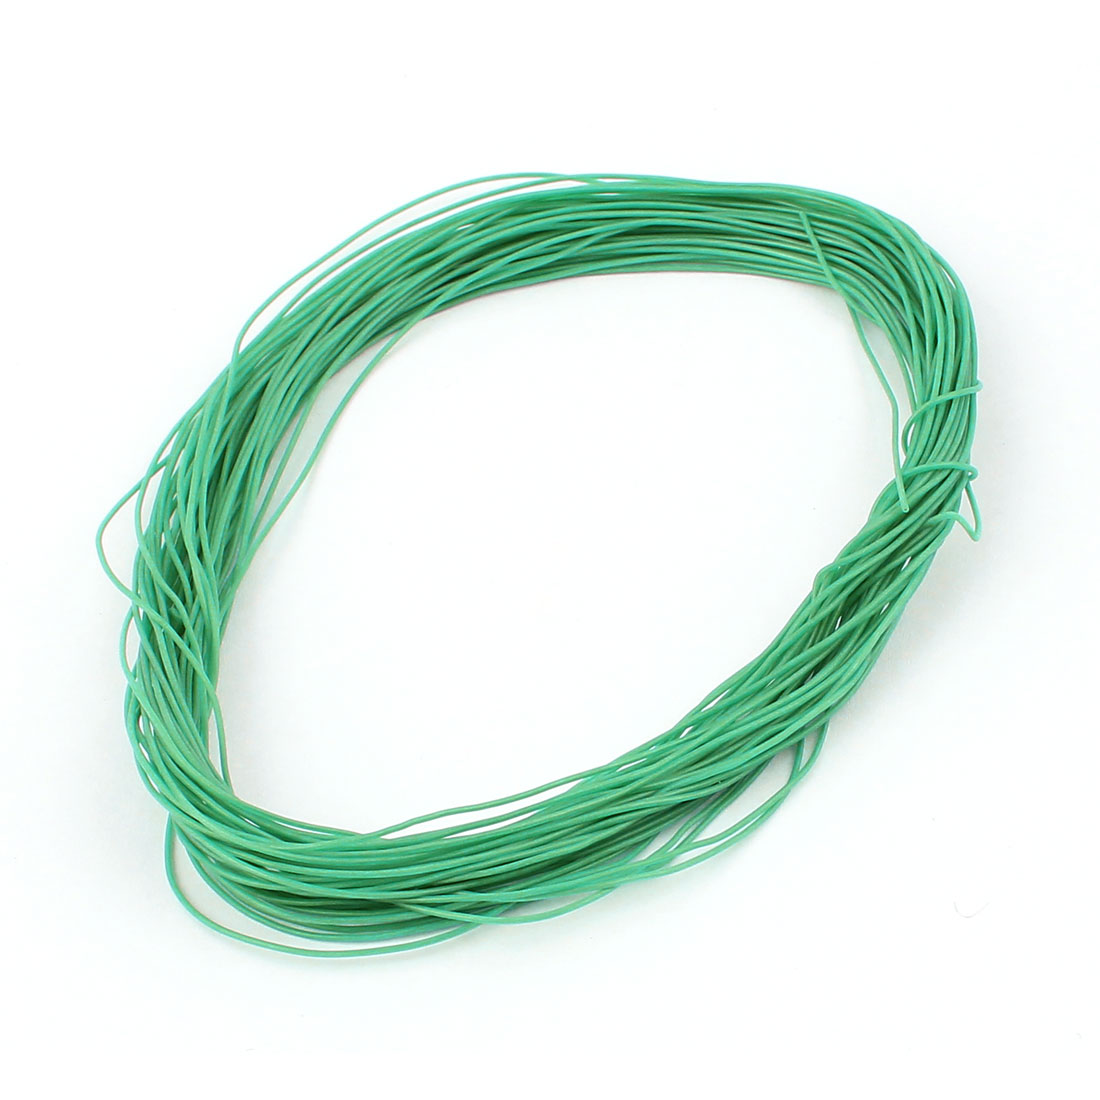 15M 30AWG Electric Copper Core Flexible Silicone Wire Cable Green